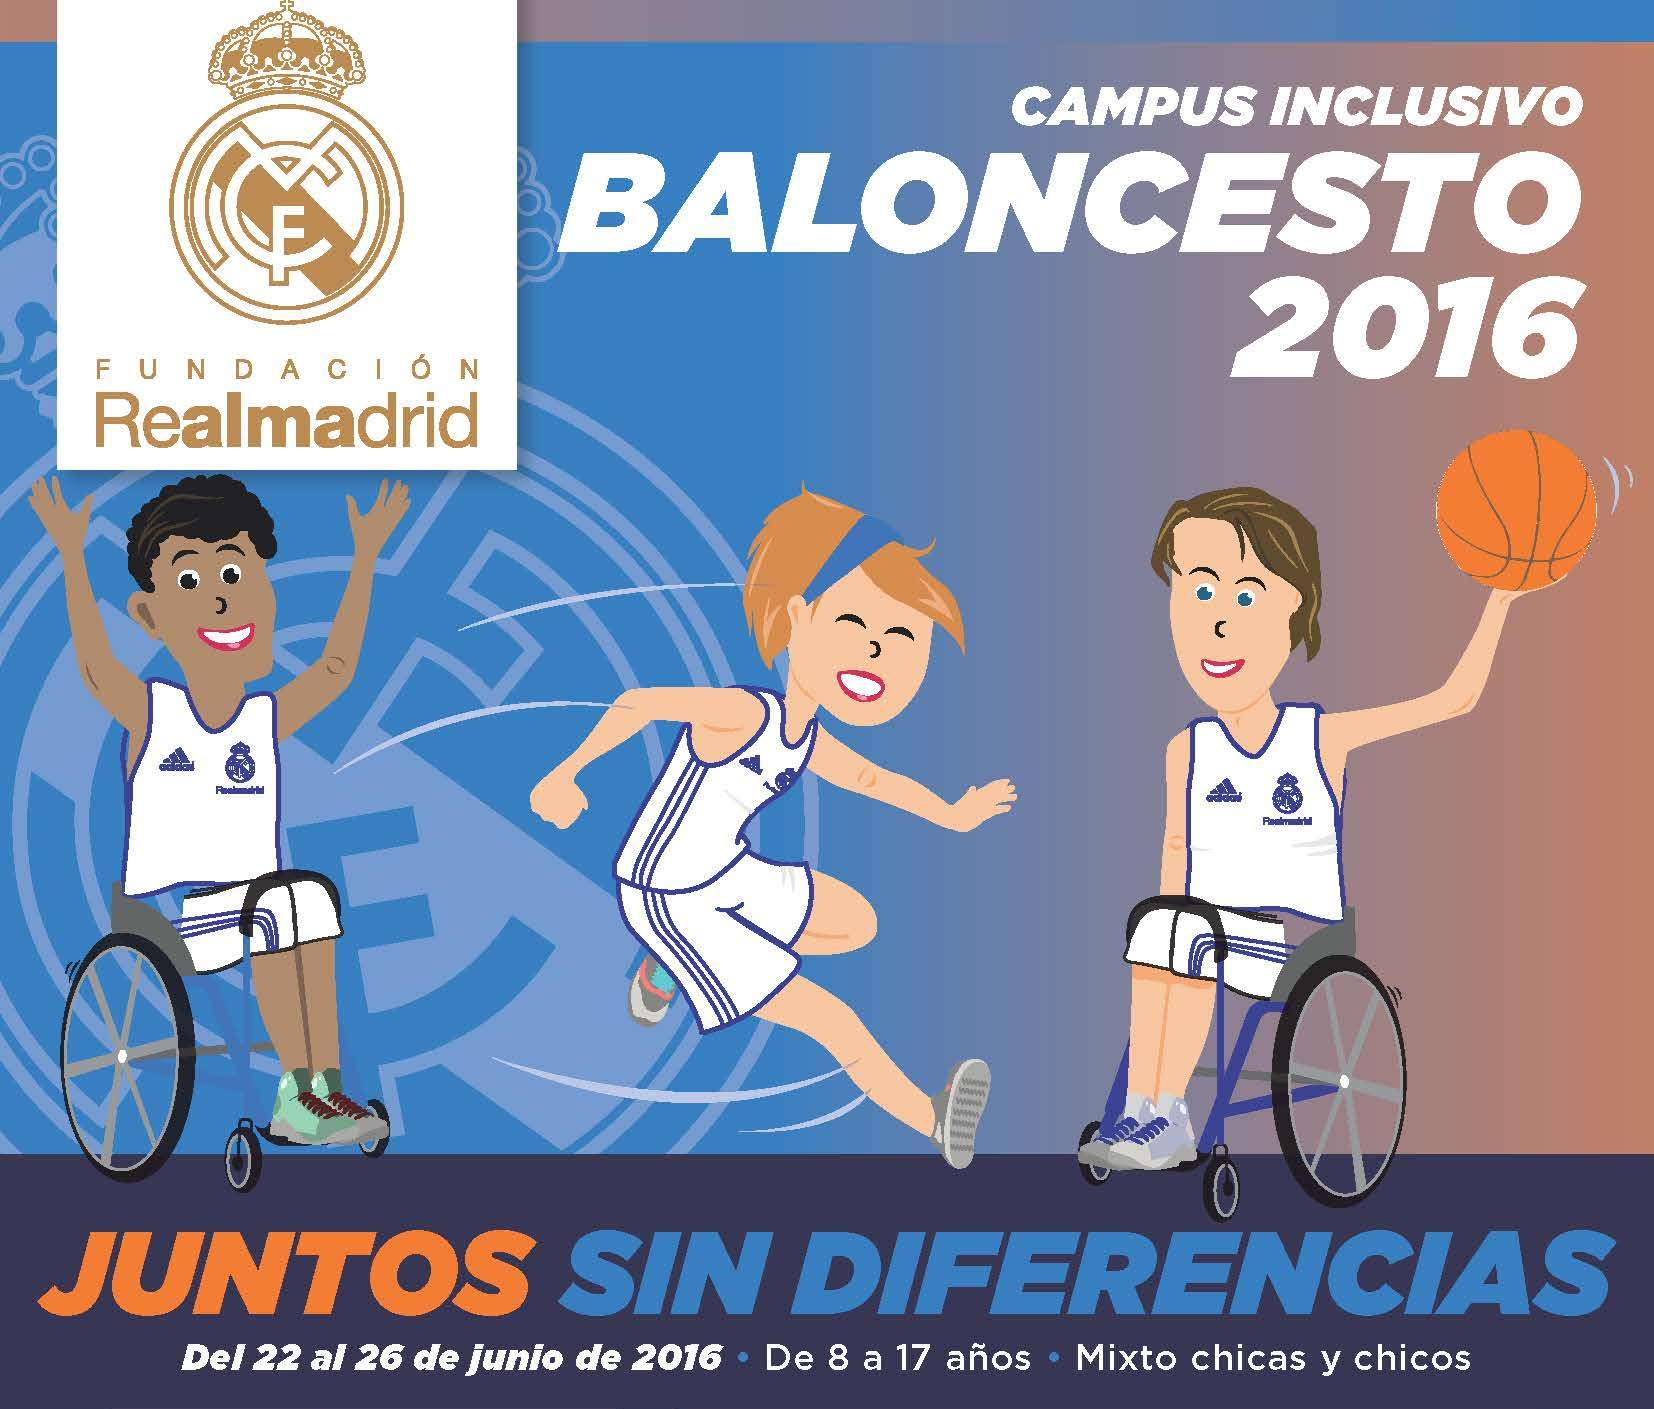 campus inclusivo baloncesto